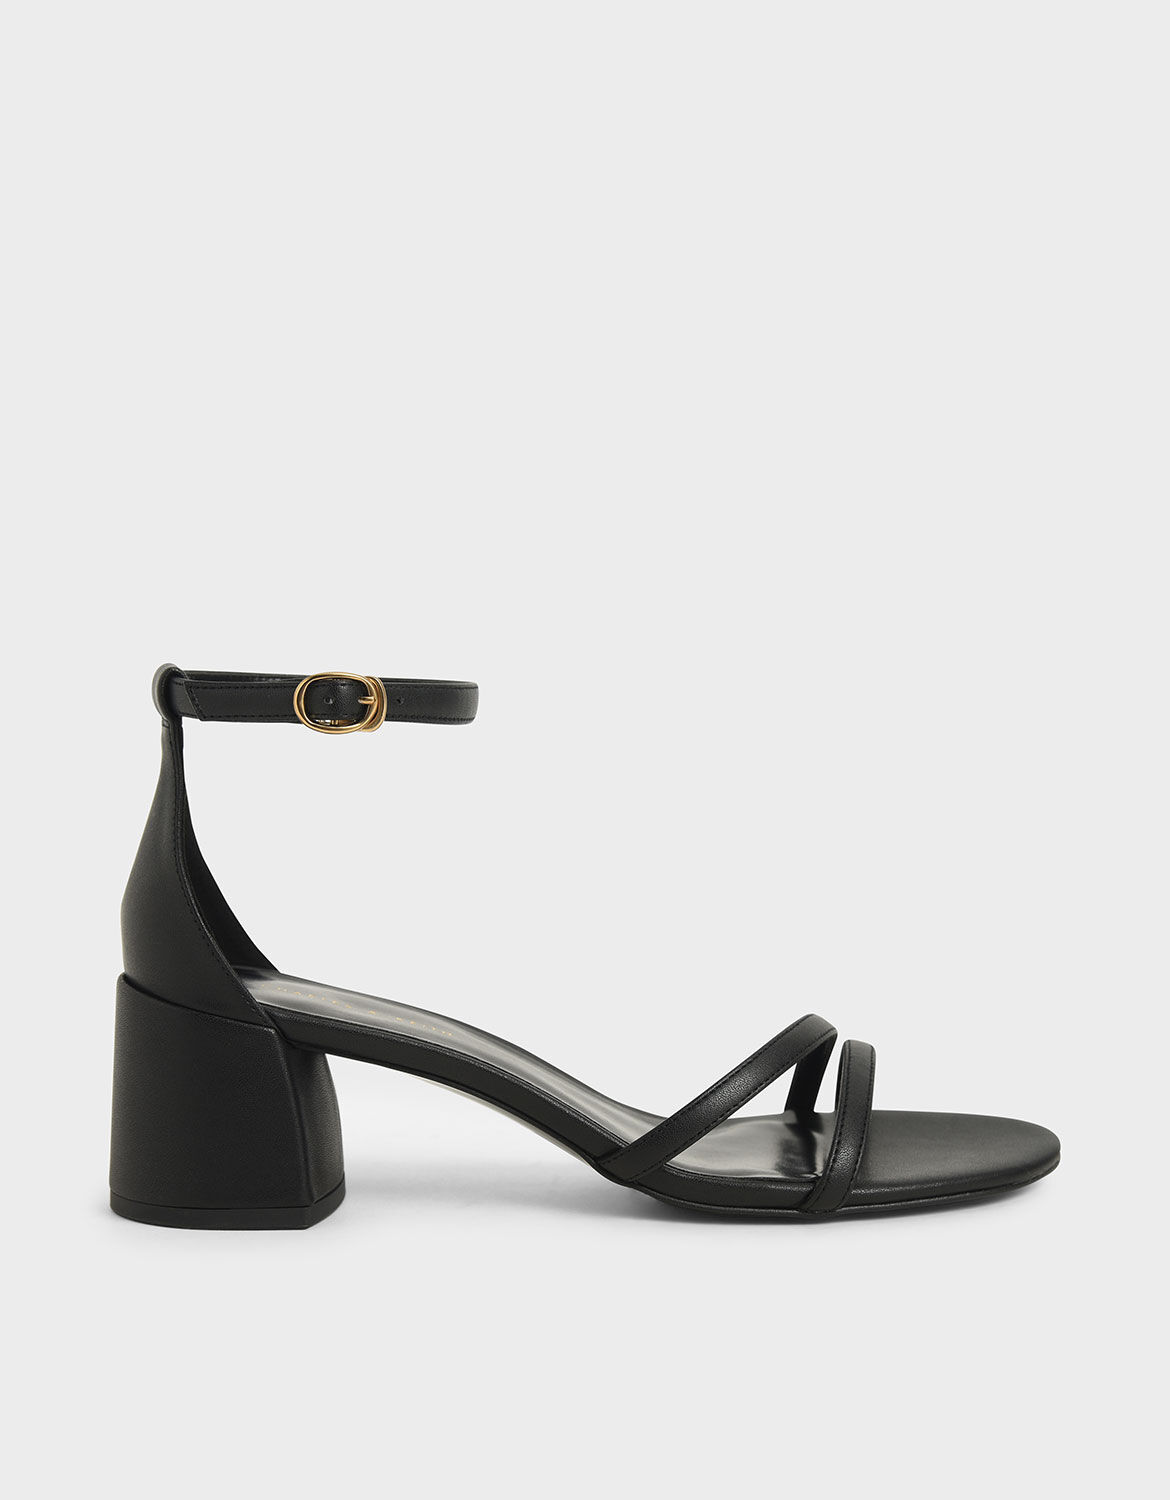 Ankle Strap Sandals   CHARLES \u0026 KEITH SG